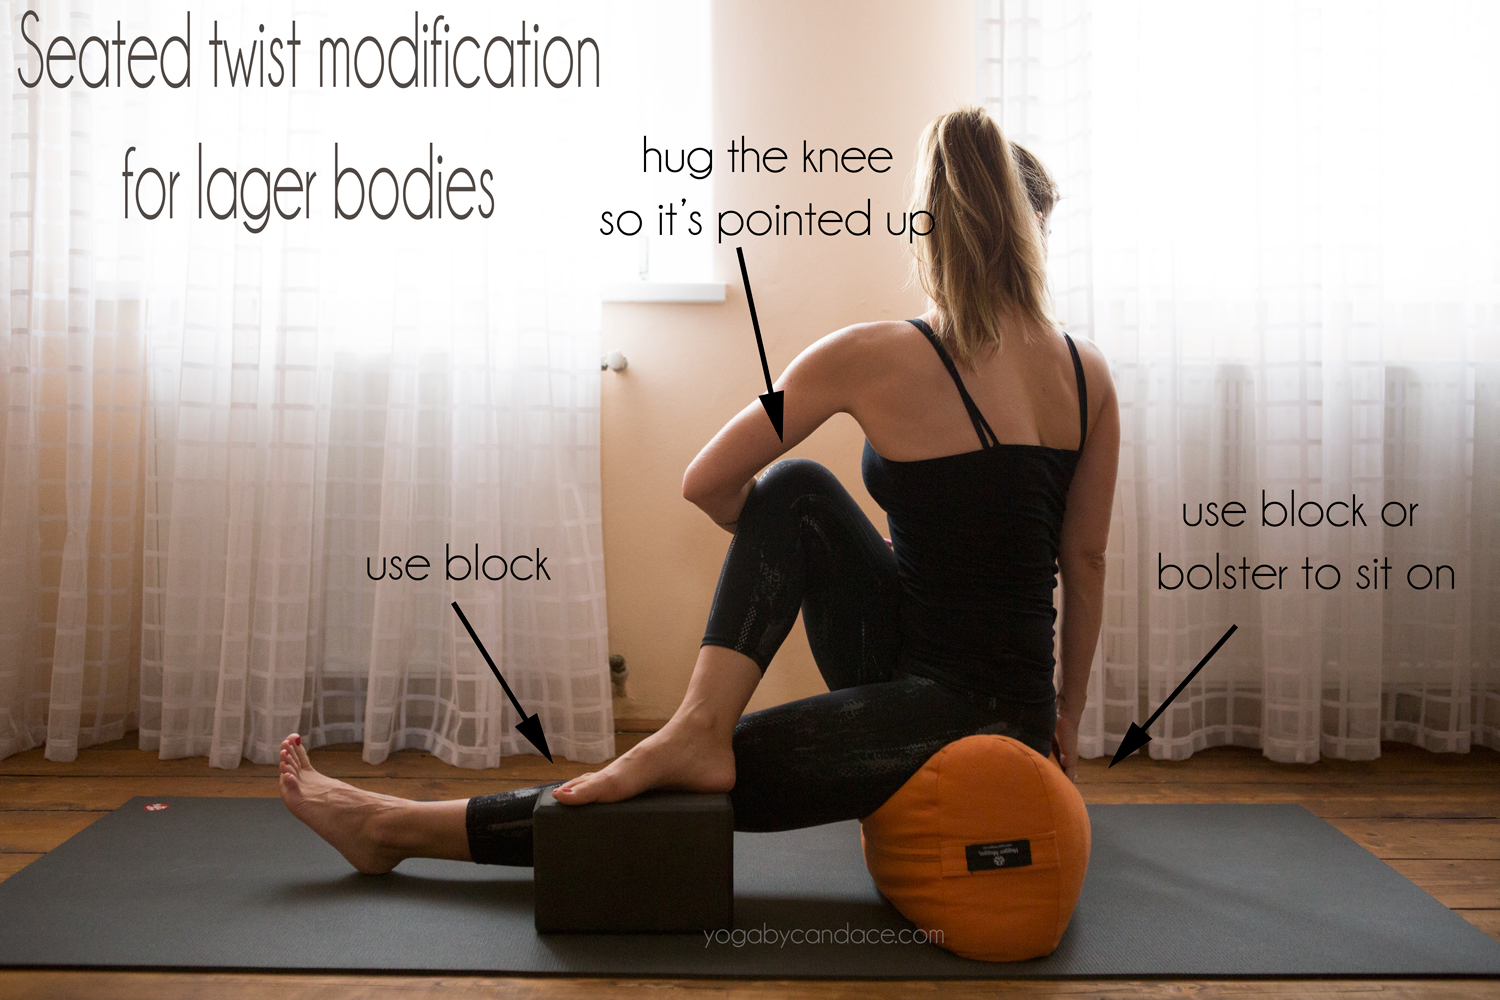 Seated twist modifications for larger bodies